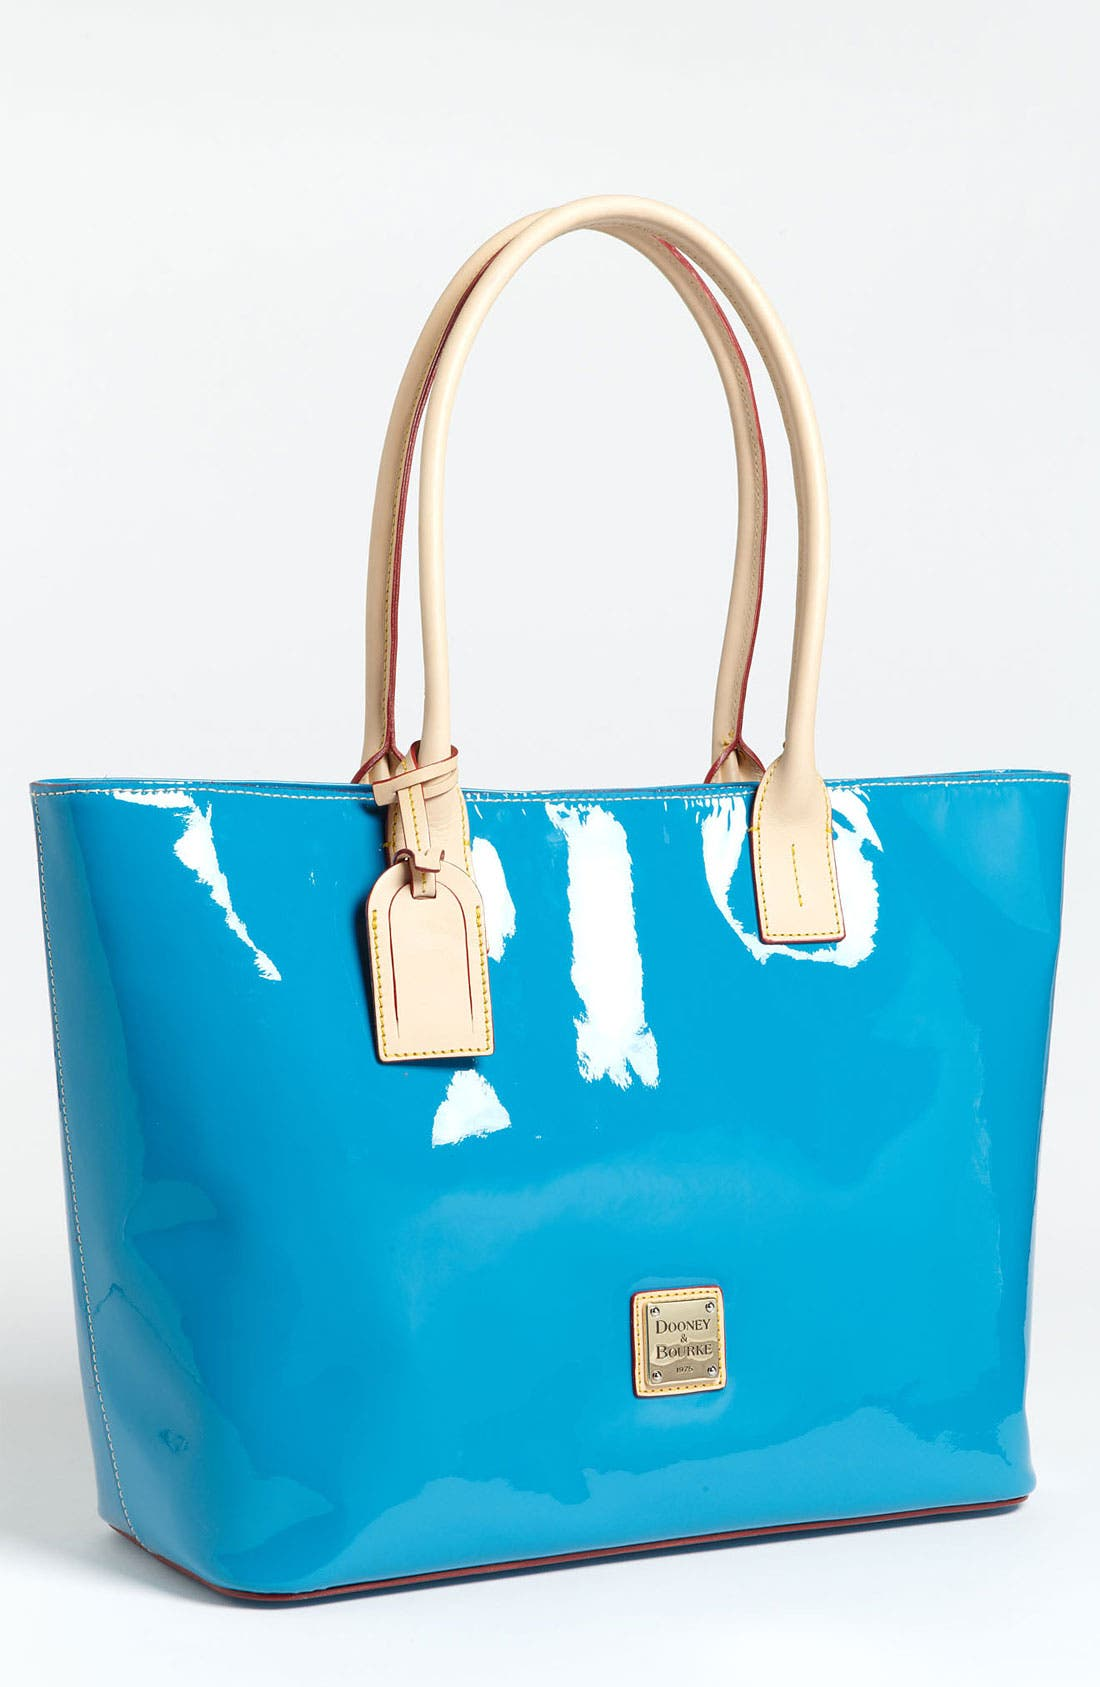 Alternate Image 1 Selected - Dooney & Bourke 'Large' Patent Leather Shopper